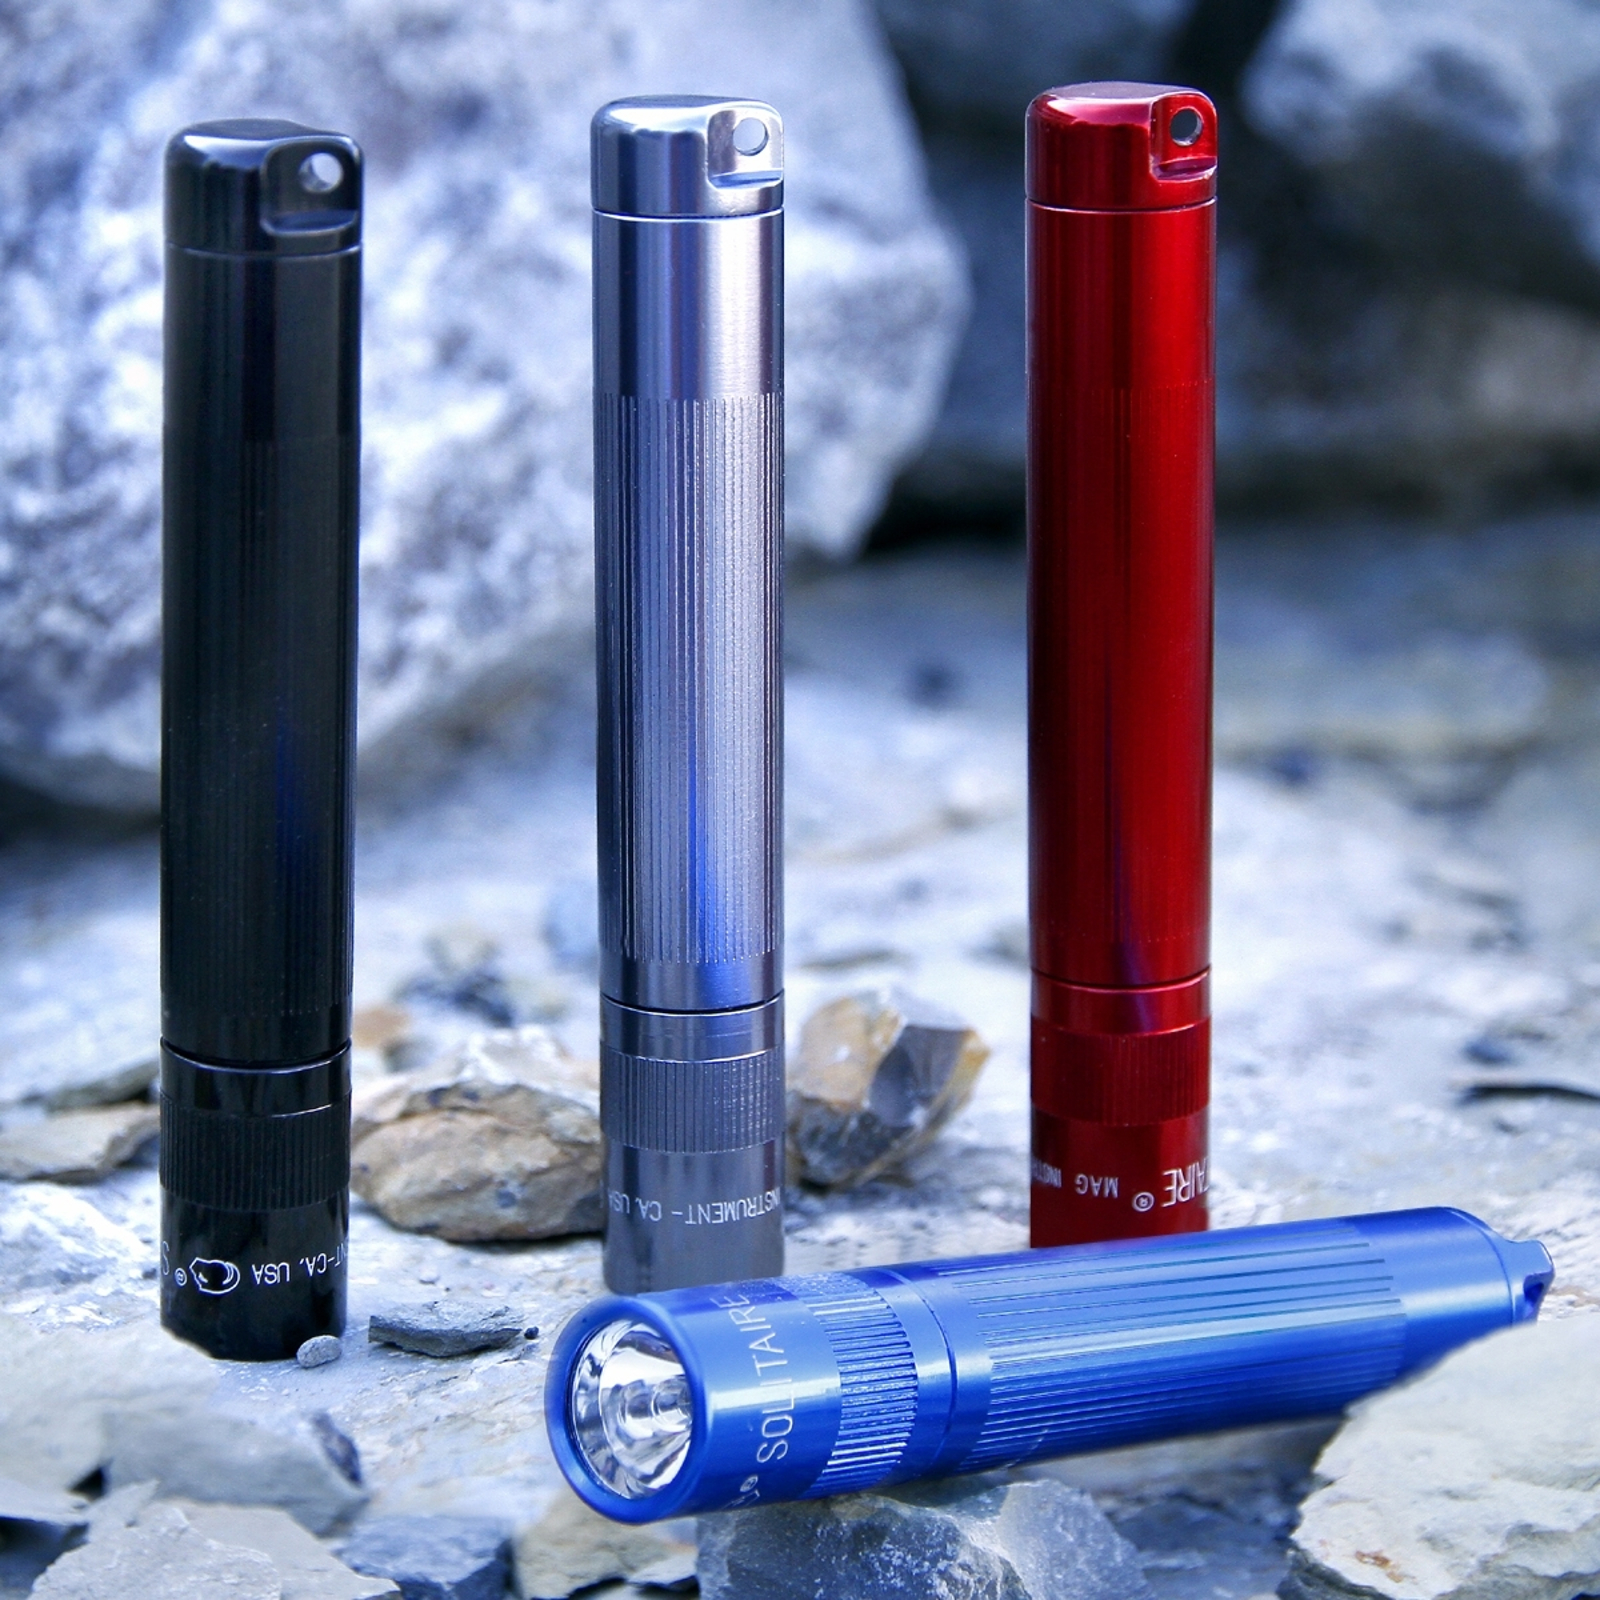 Maglite Solitaire Taschenlampe in Rot